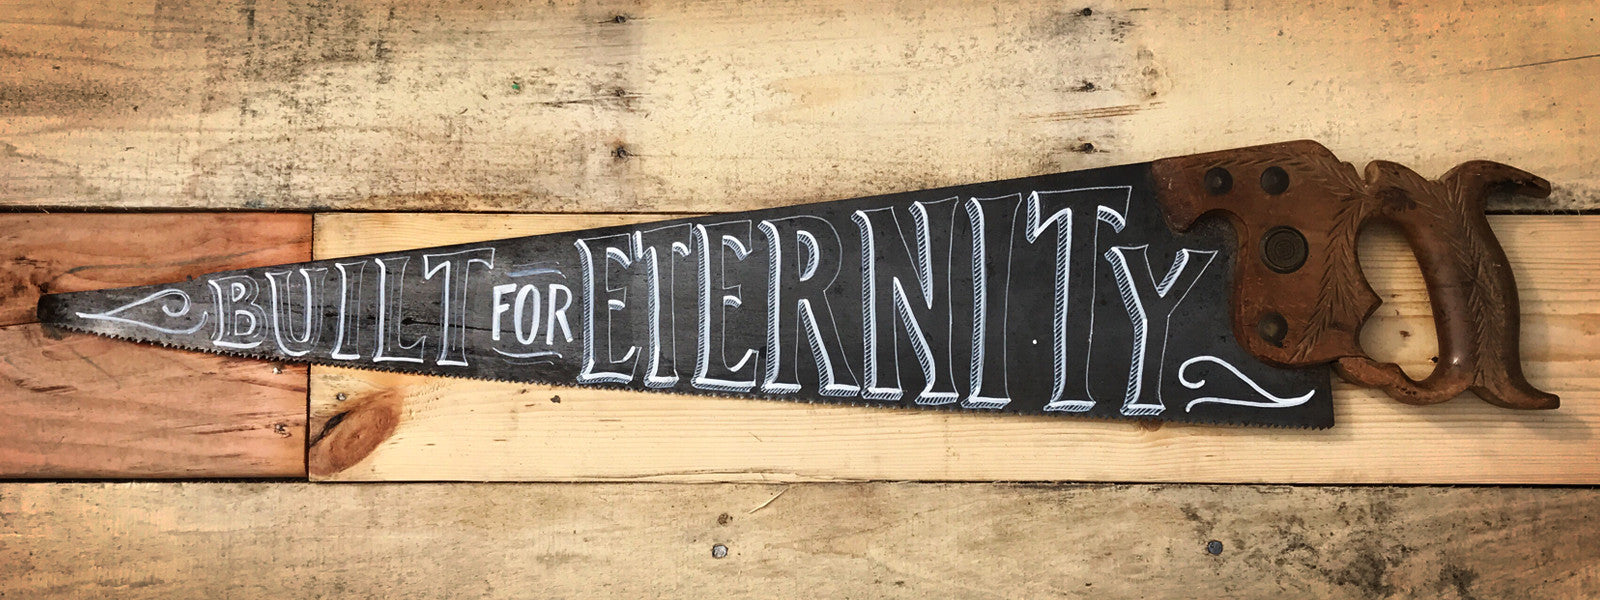 Built for Eternity Hand Lettered Saw